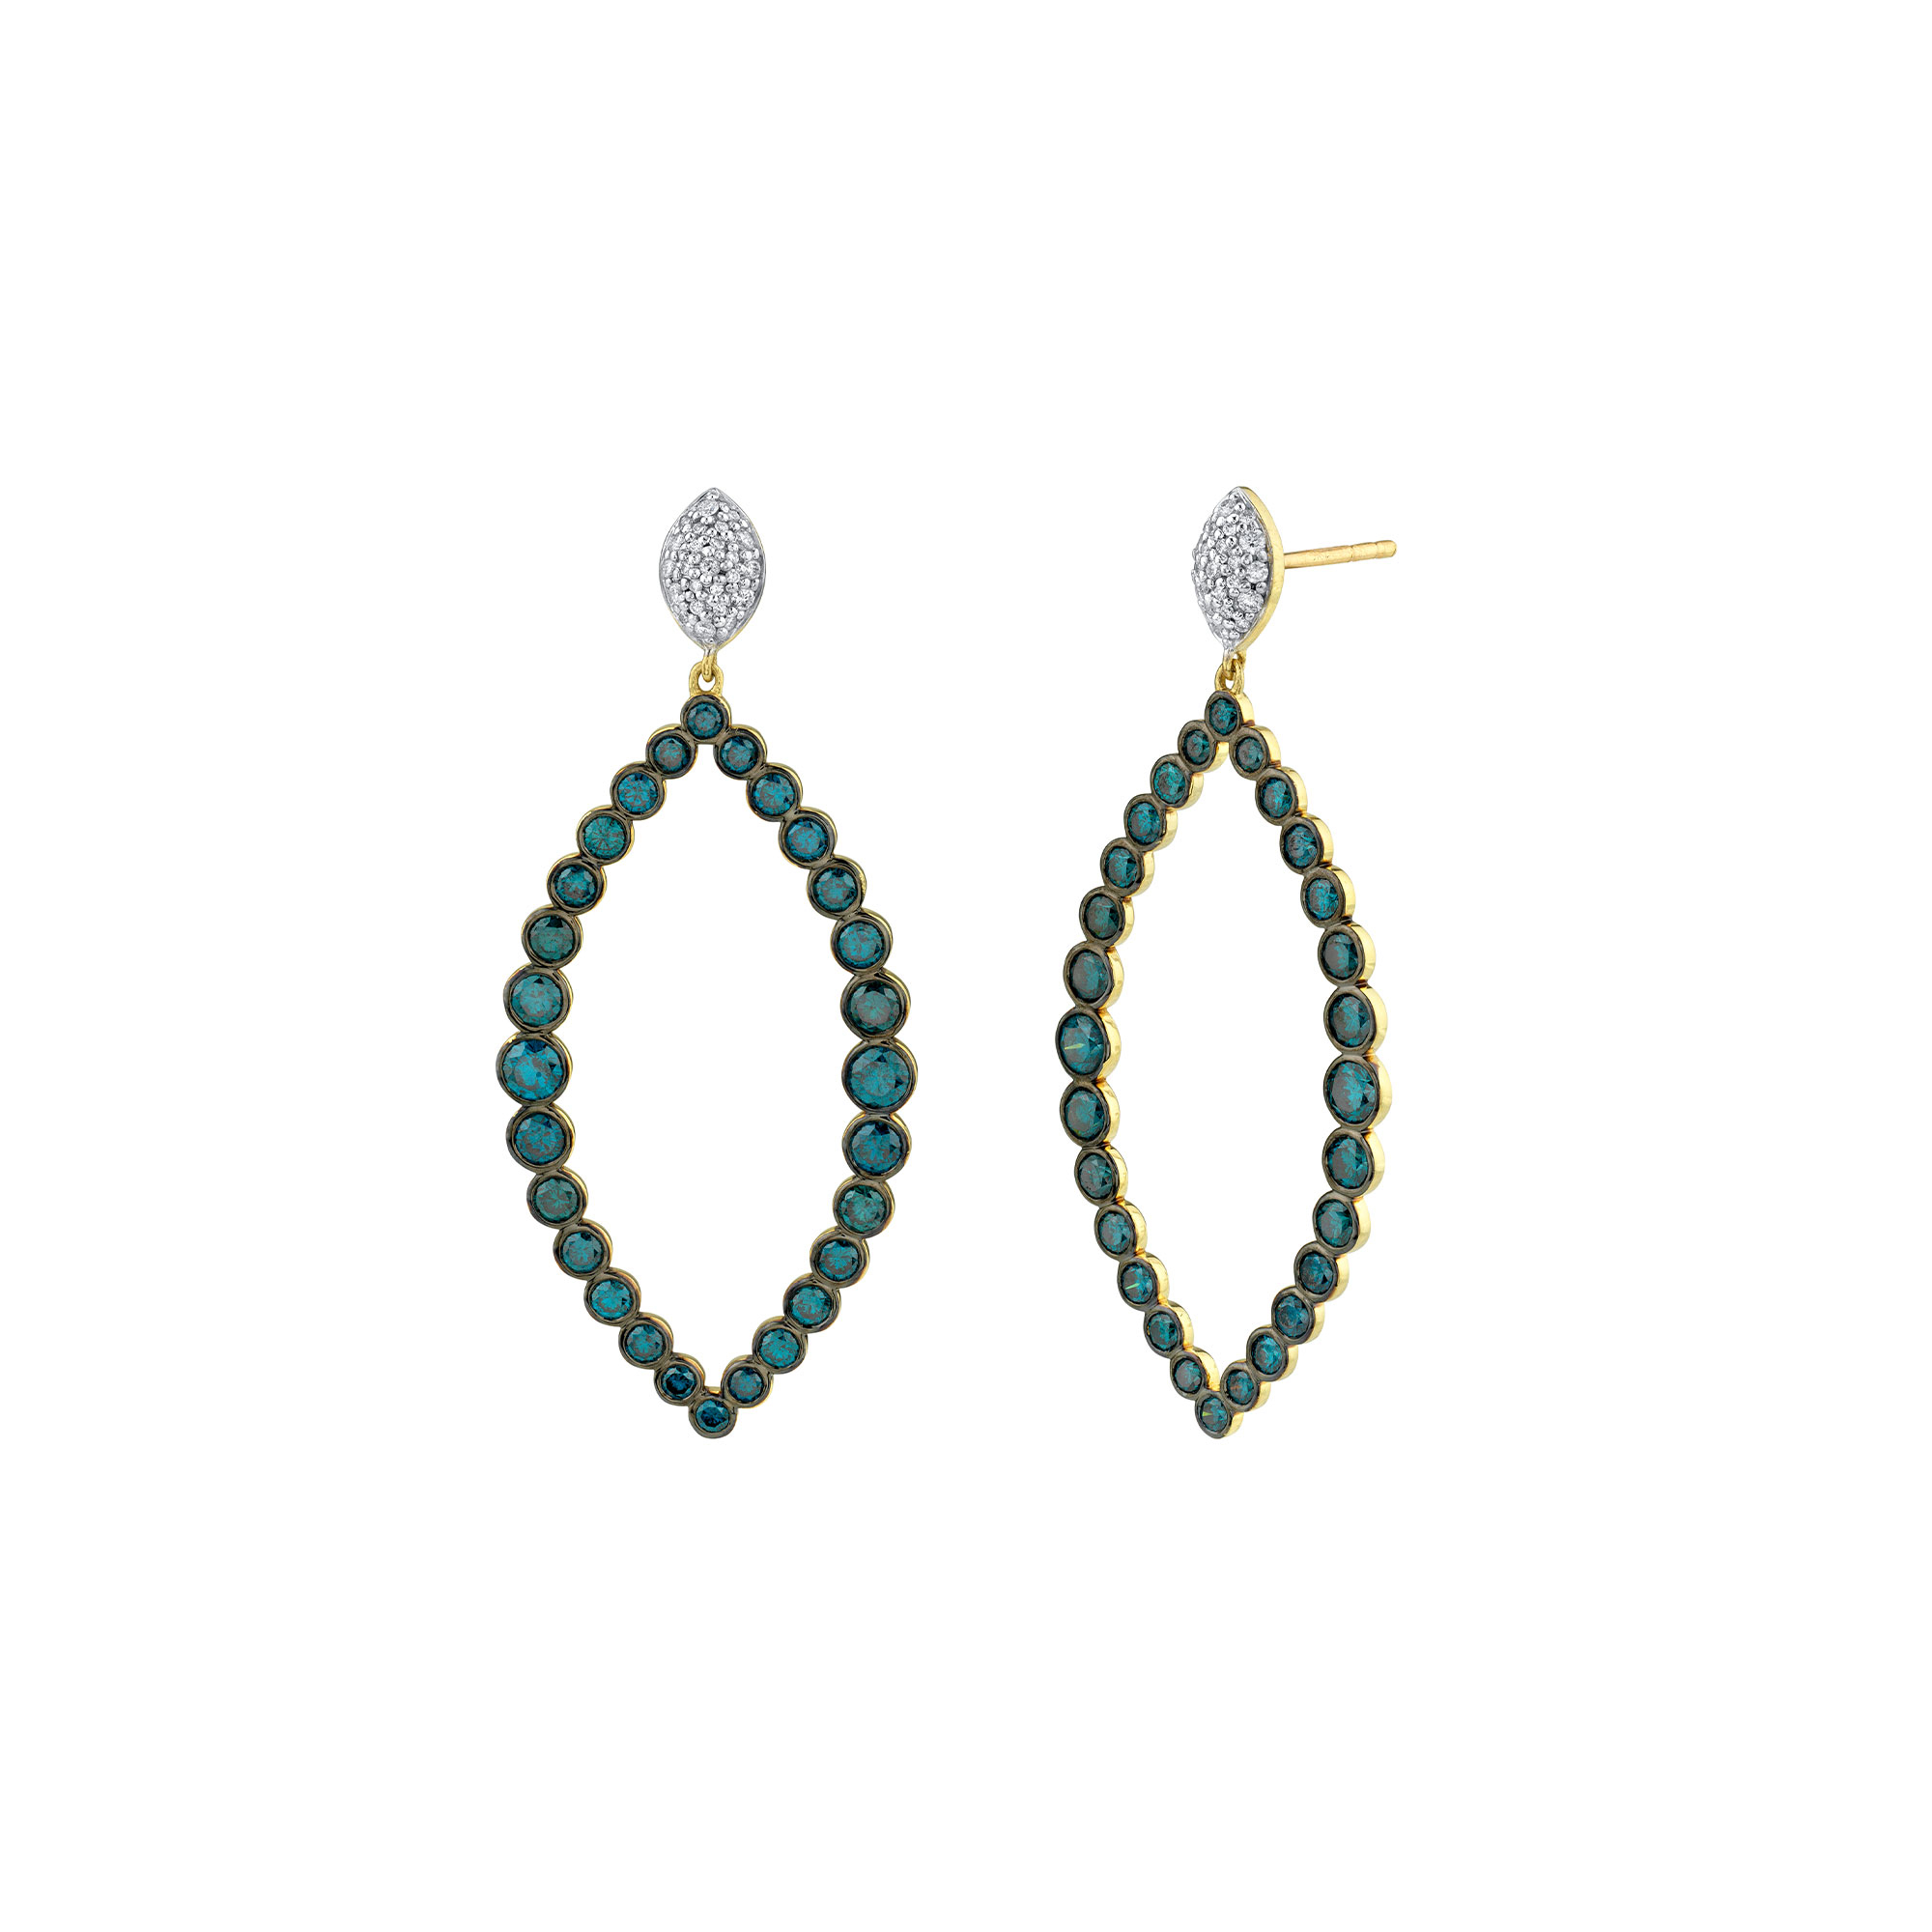 Sloane Street 18K Yellow Gold .20cts  Diamonds Gold Earrings with Stones E220T-BDBR-WDCB-Y